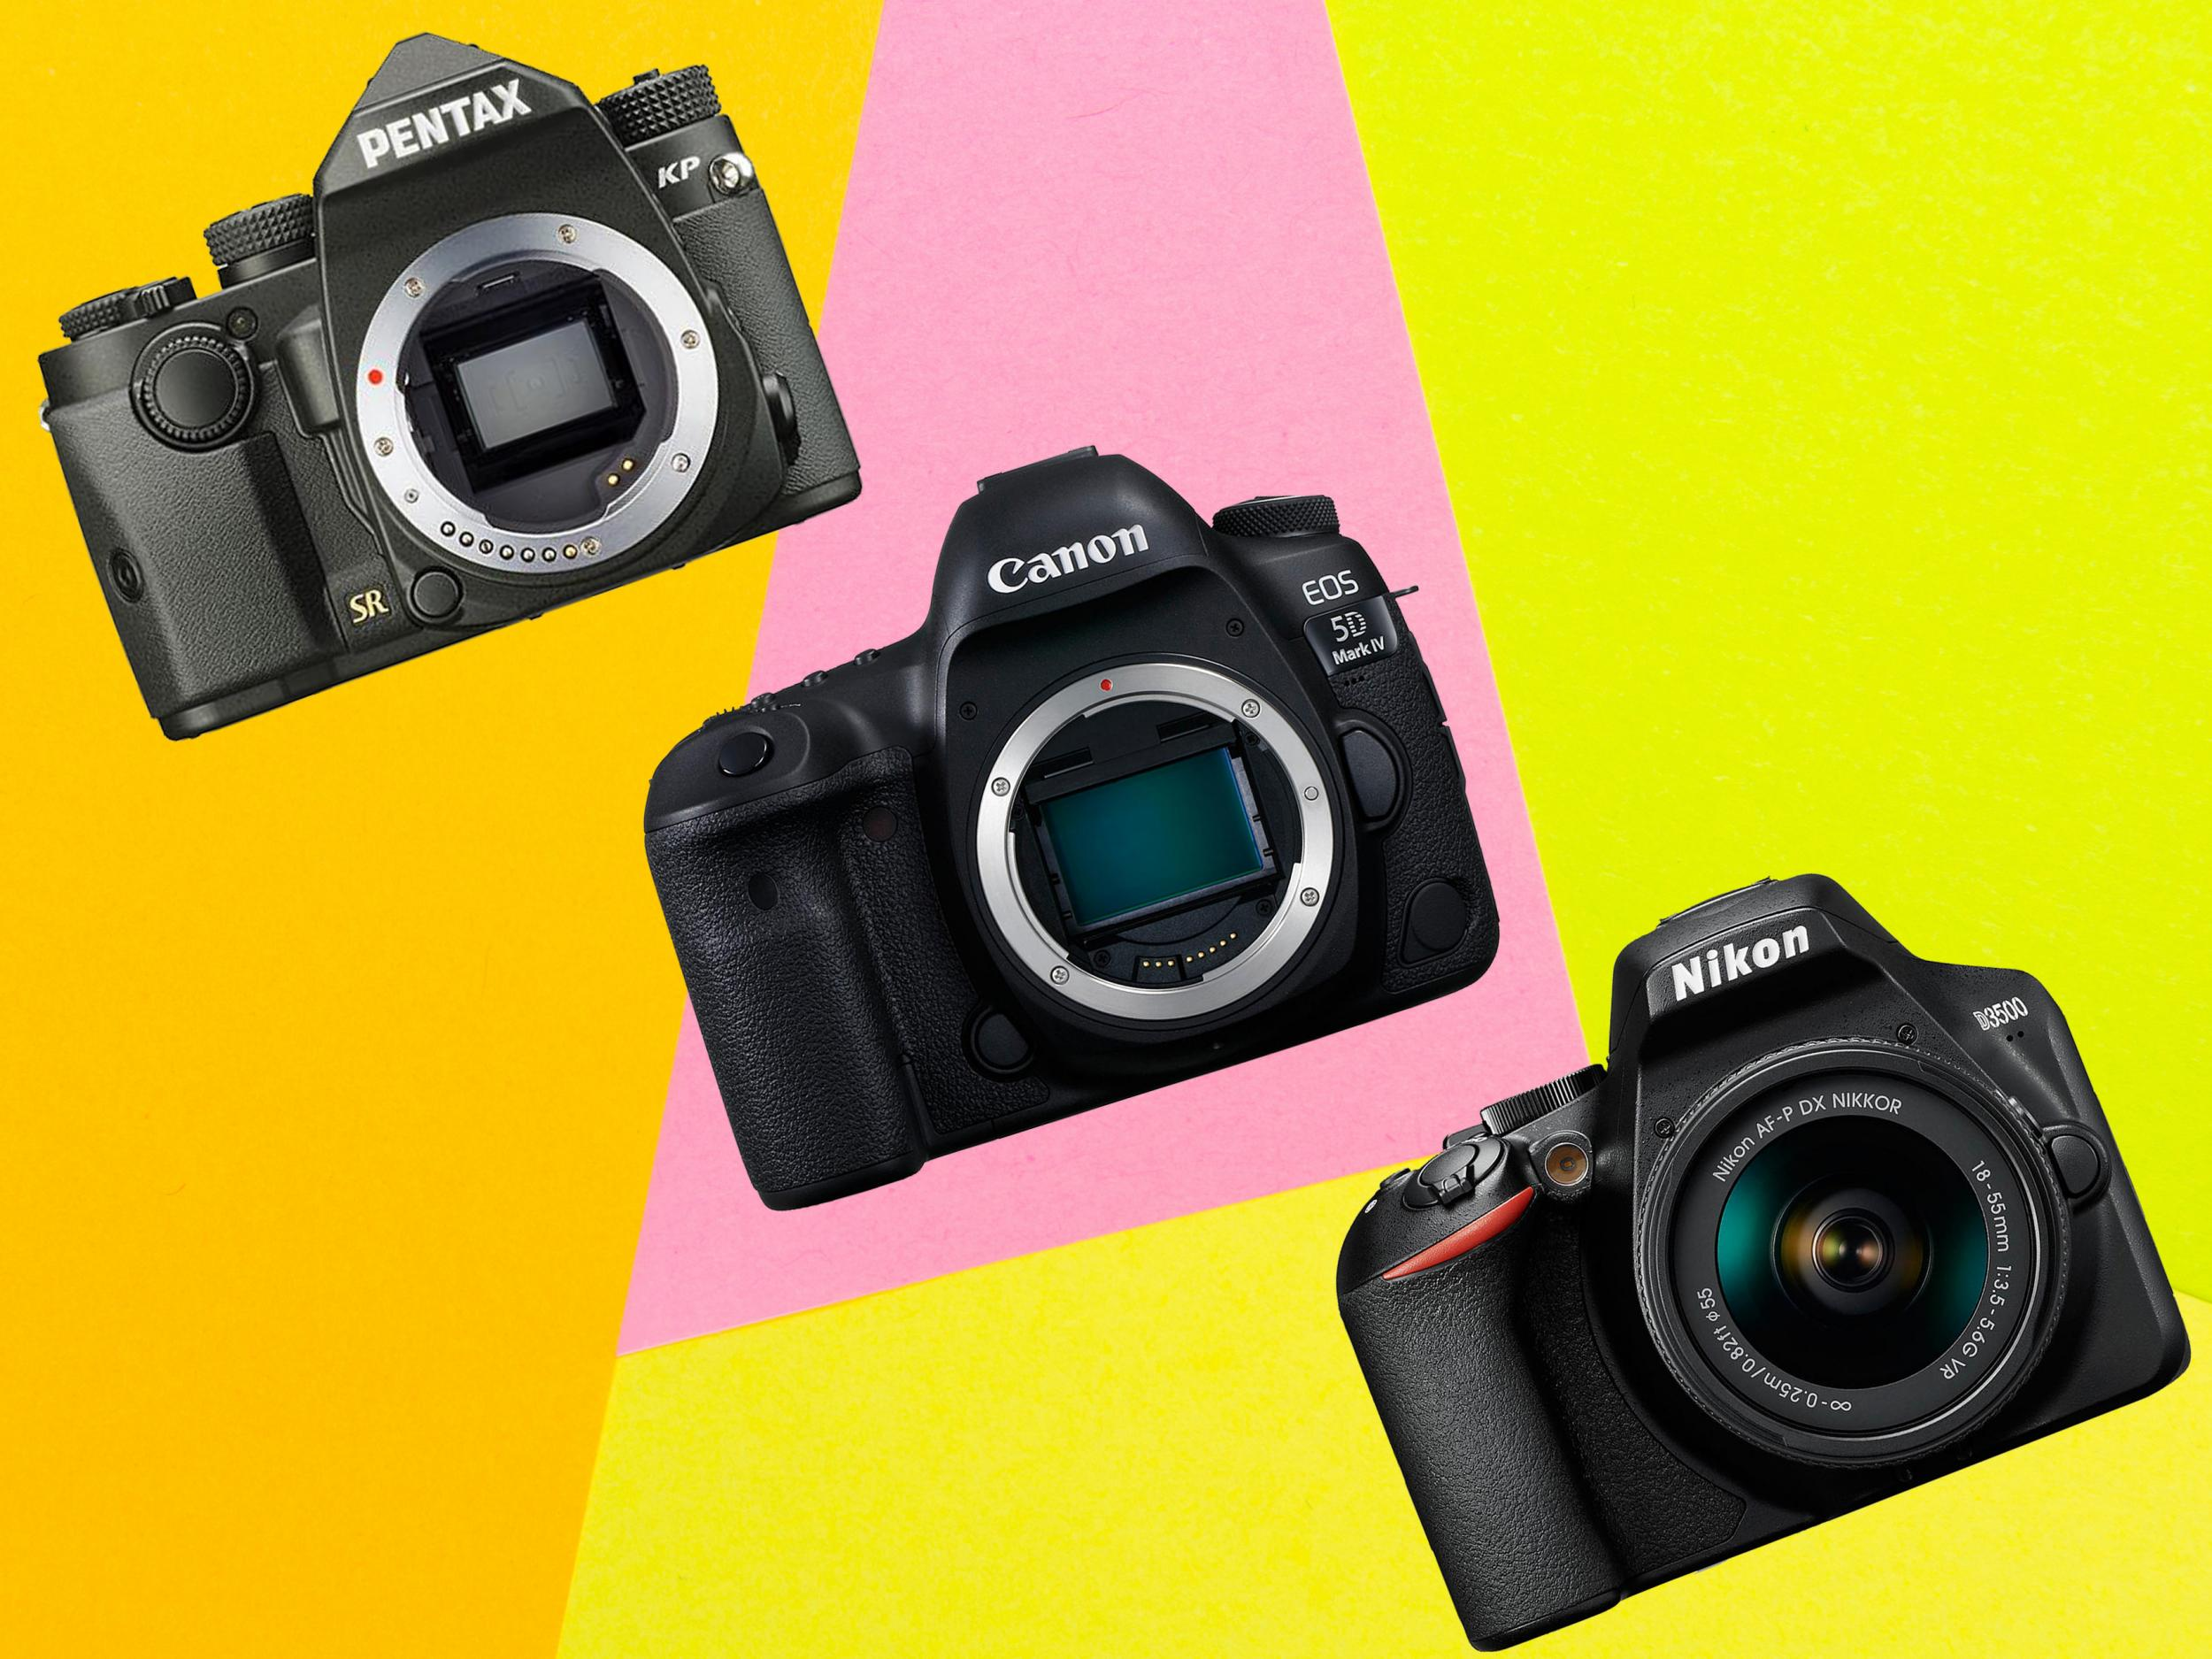 Best DSLR camera for all budgets and skill levels, from beginners to